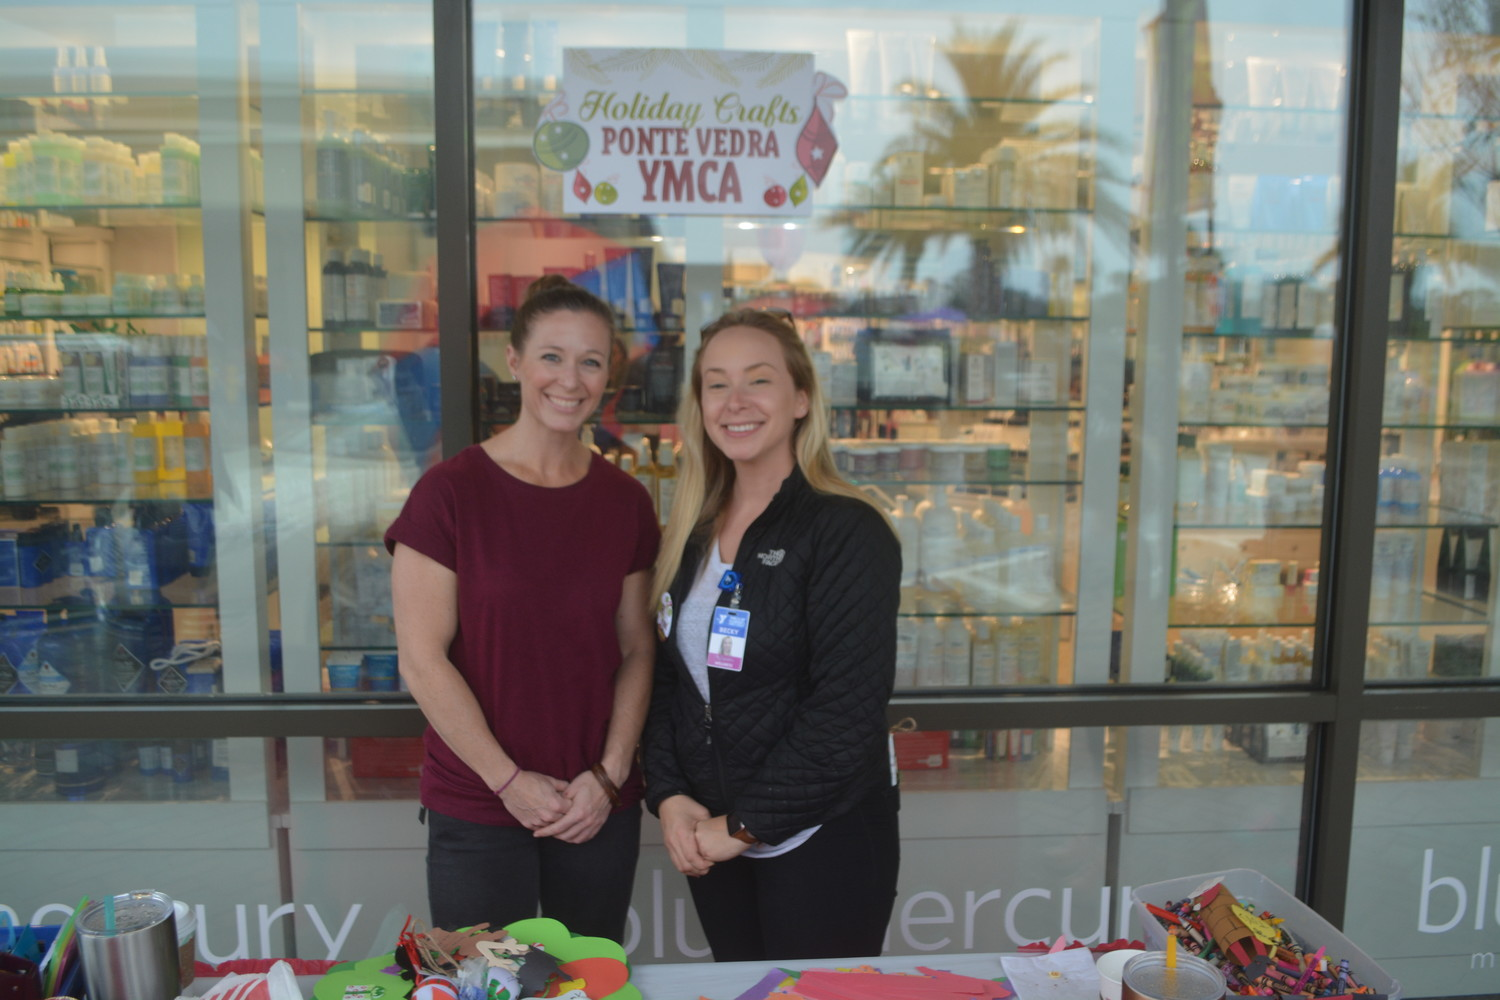 Erin Dankworth and Becky Richmond of the Ponte Vedra YMCA pose for a photo behind their holiday crafts table.